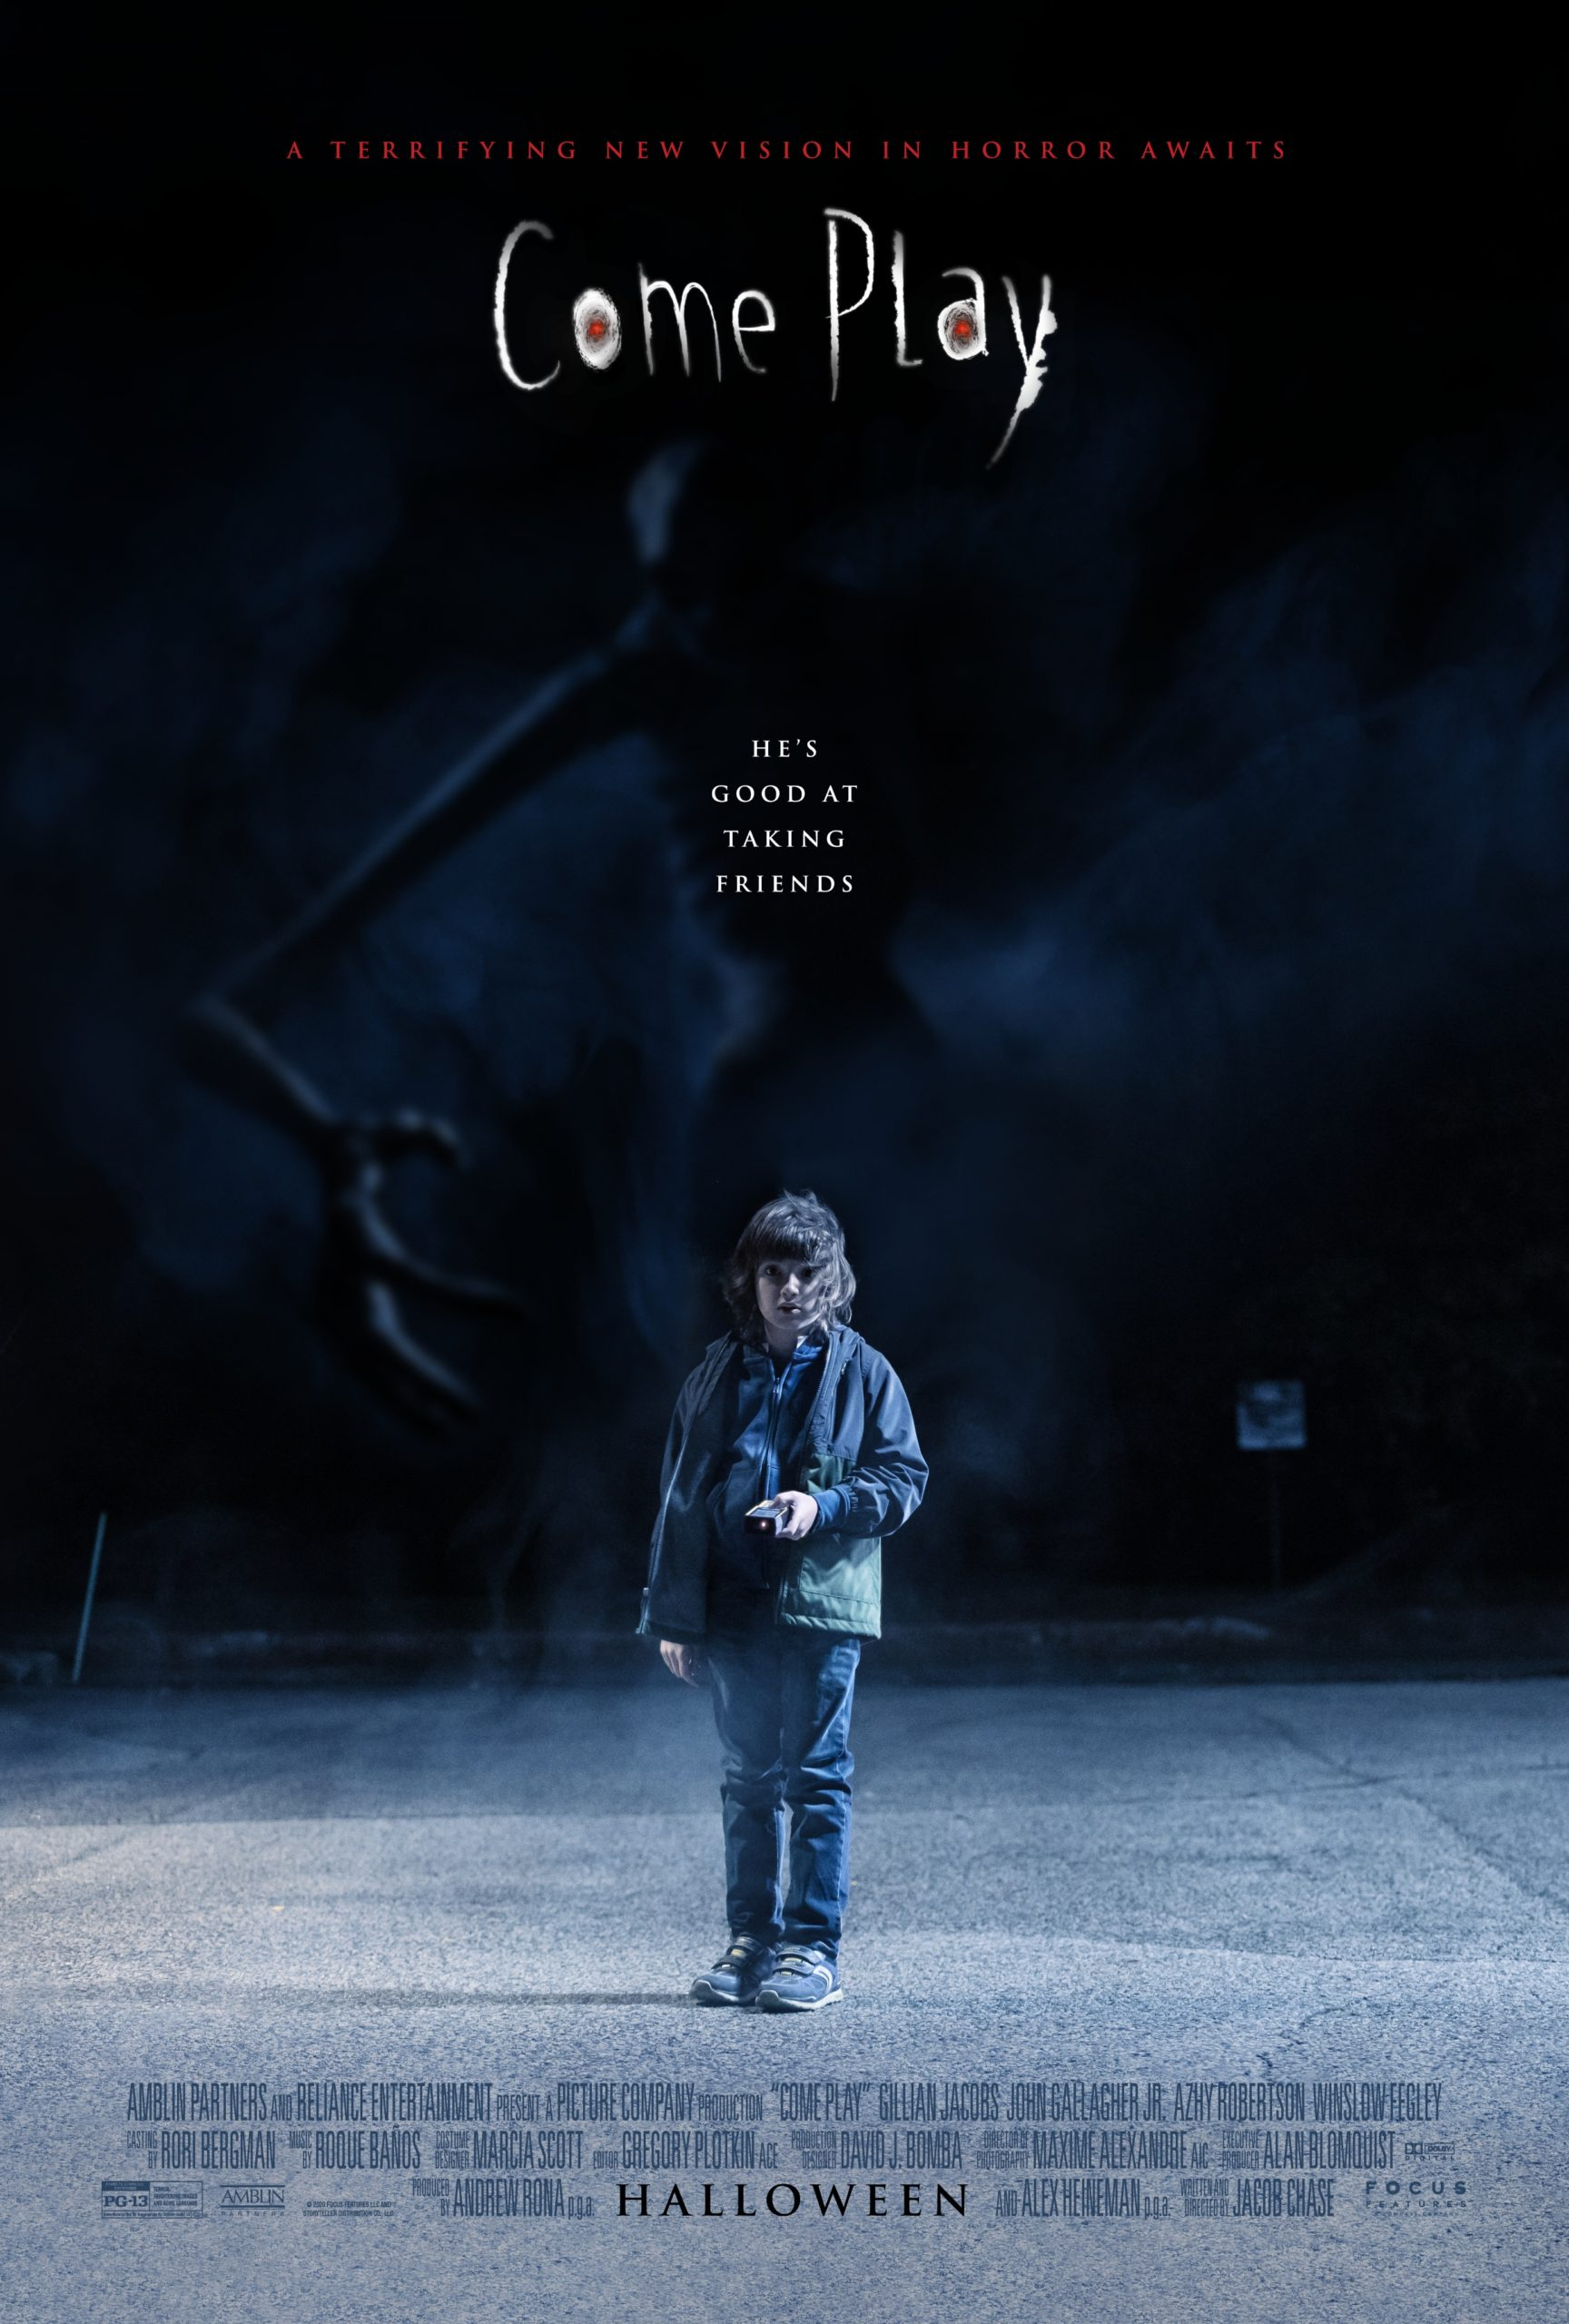 A Little Boy Befriends A Terrifying Monster In Come Play This Halloween Trailer Bloody Disgusting